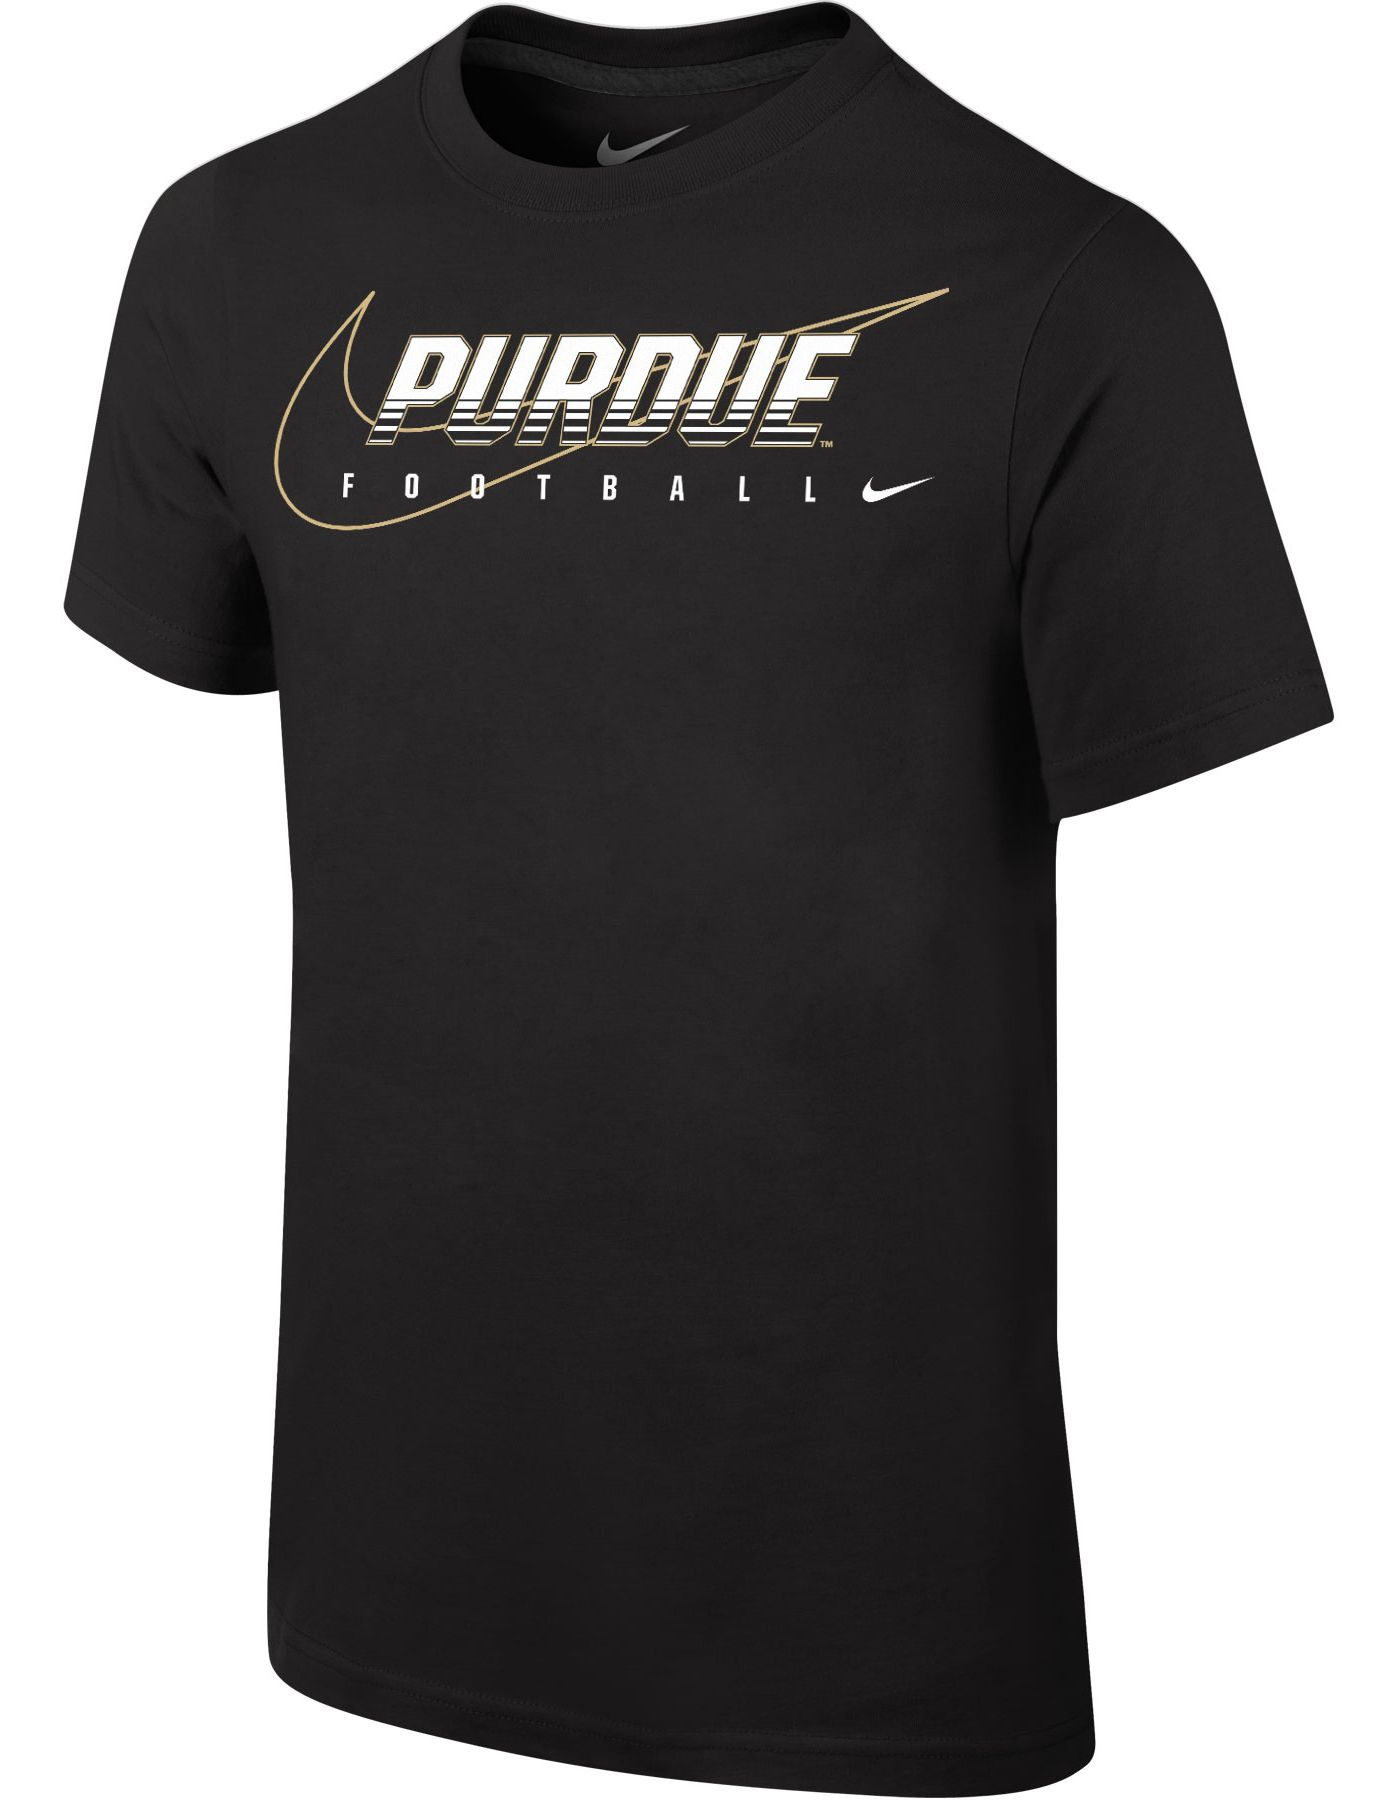 Nike Youth Purdue Boilermakers Football Facility Black T-Shirt